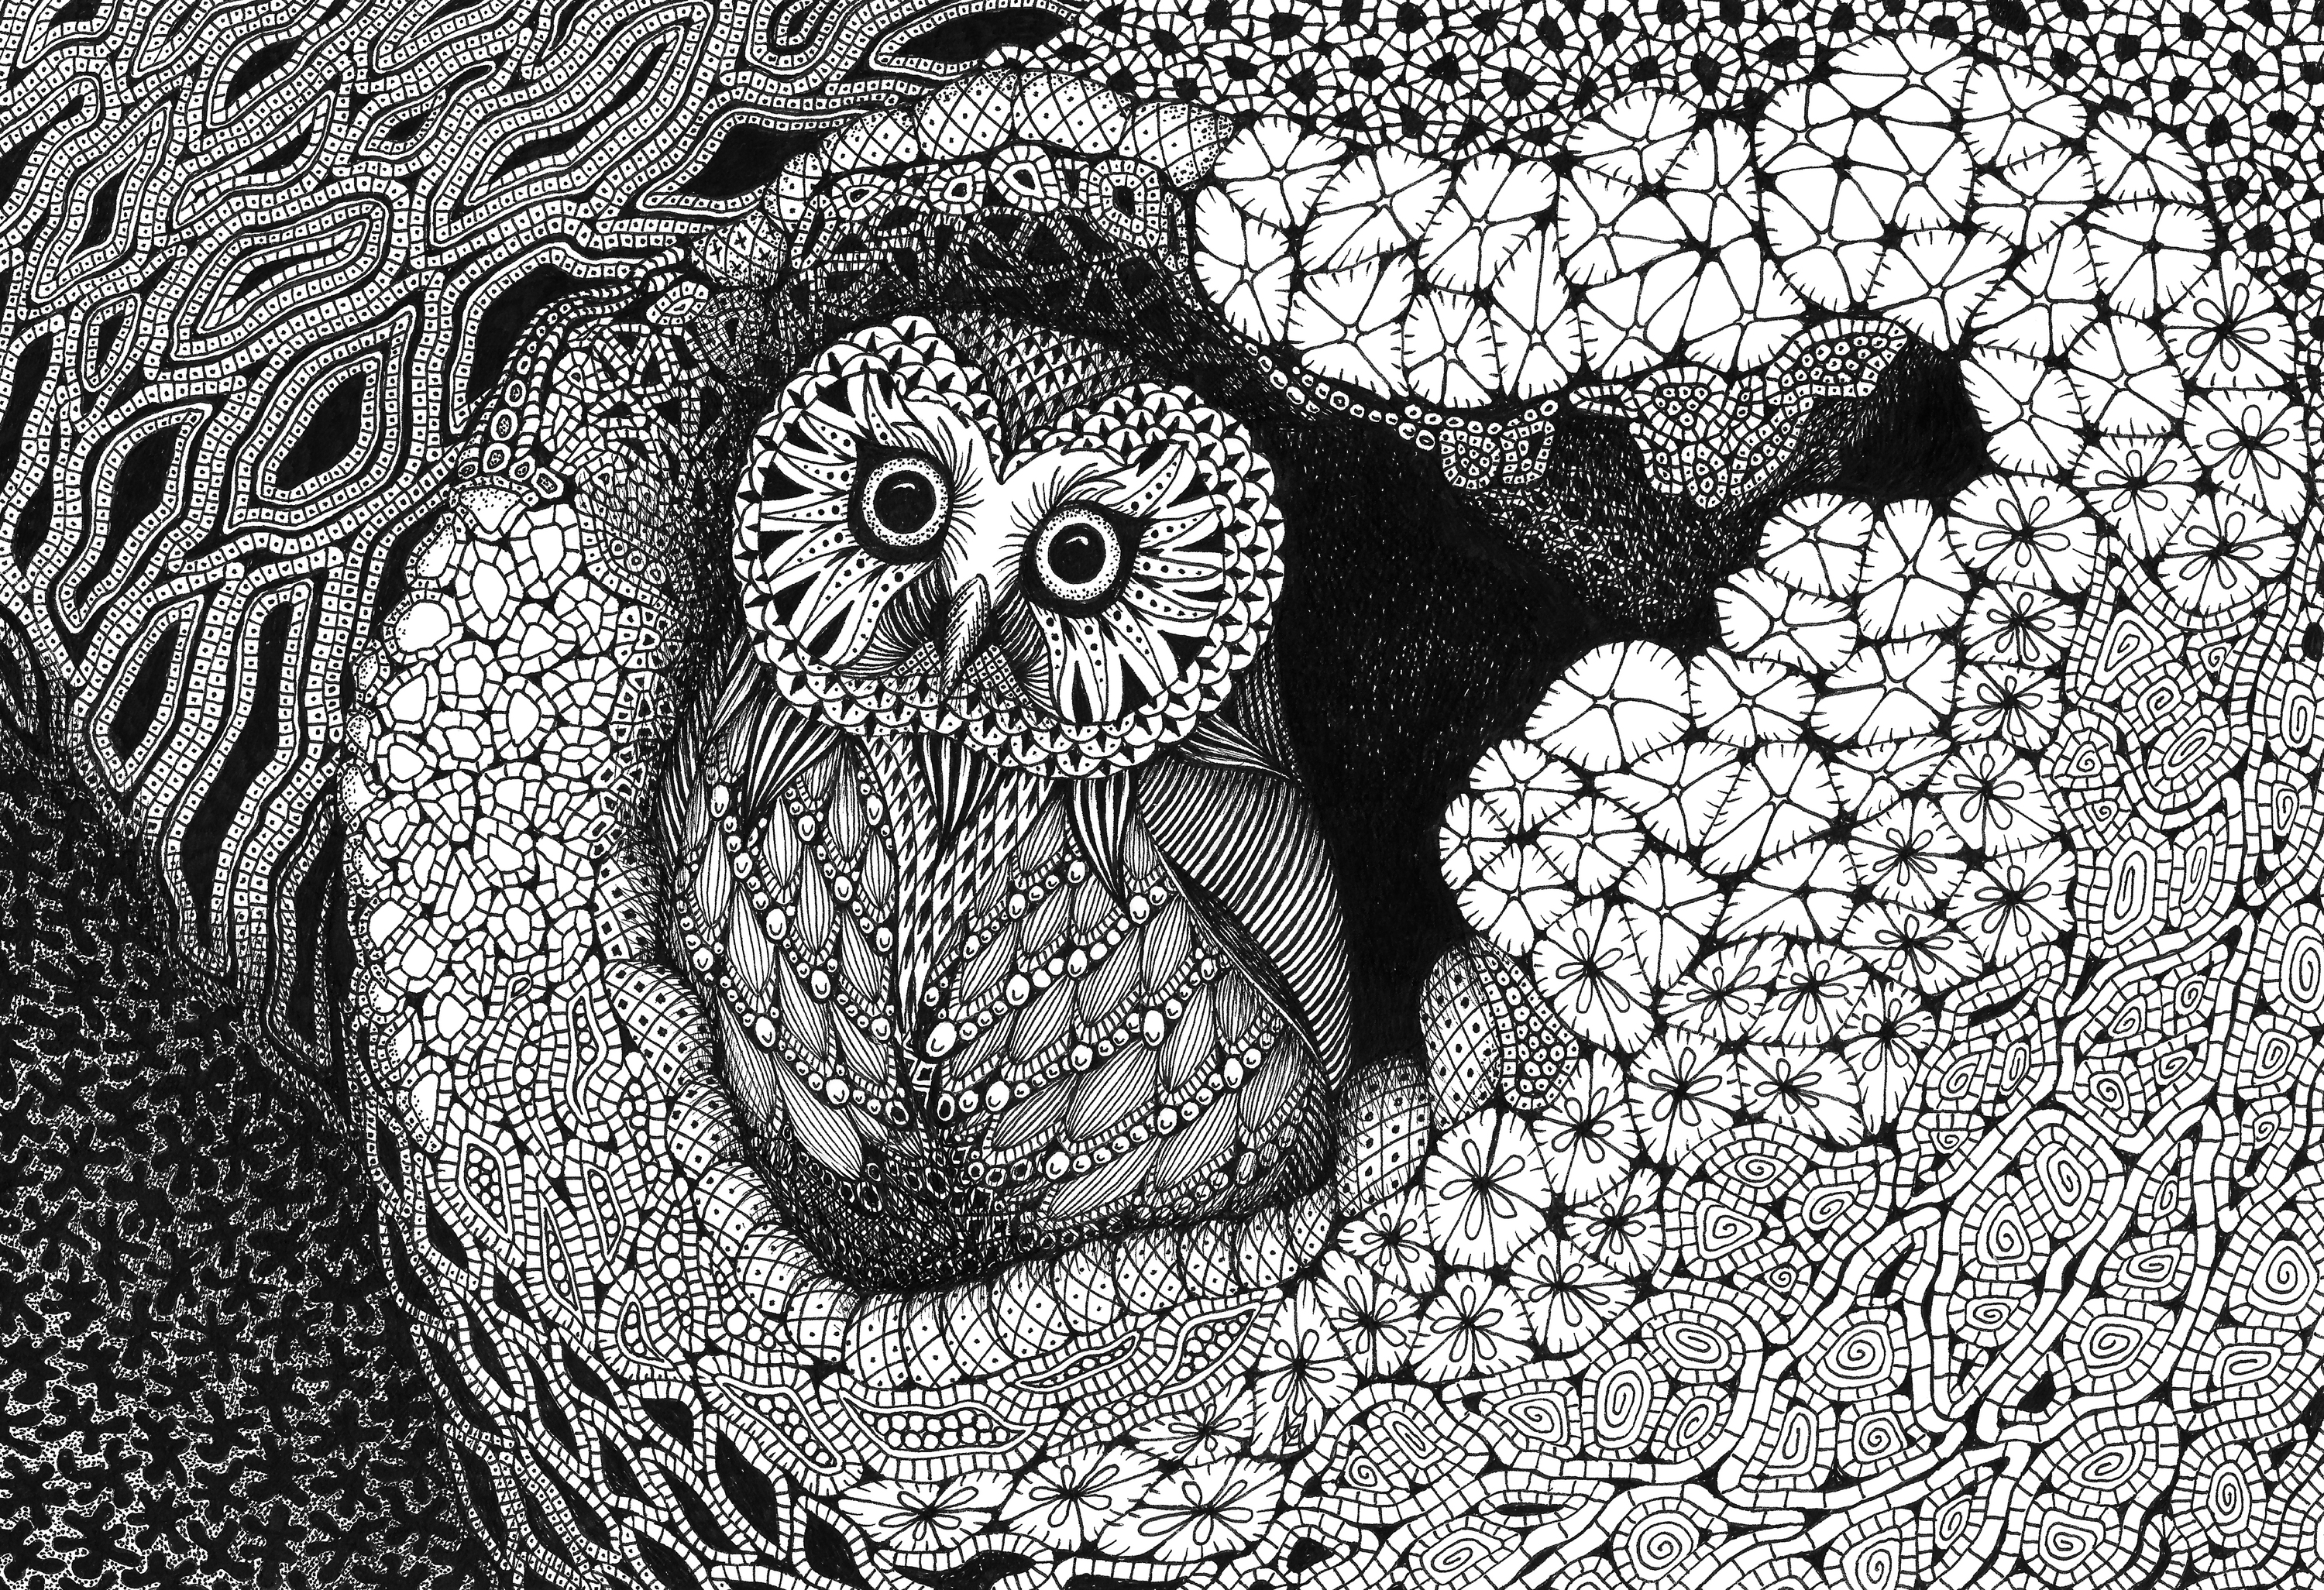 Owl in a hollow ftrucx